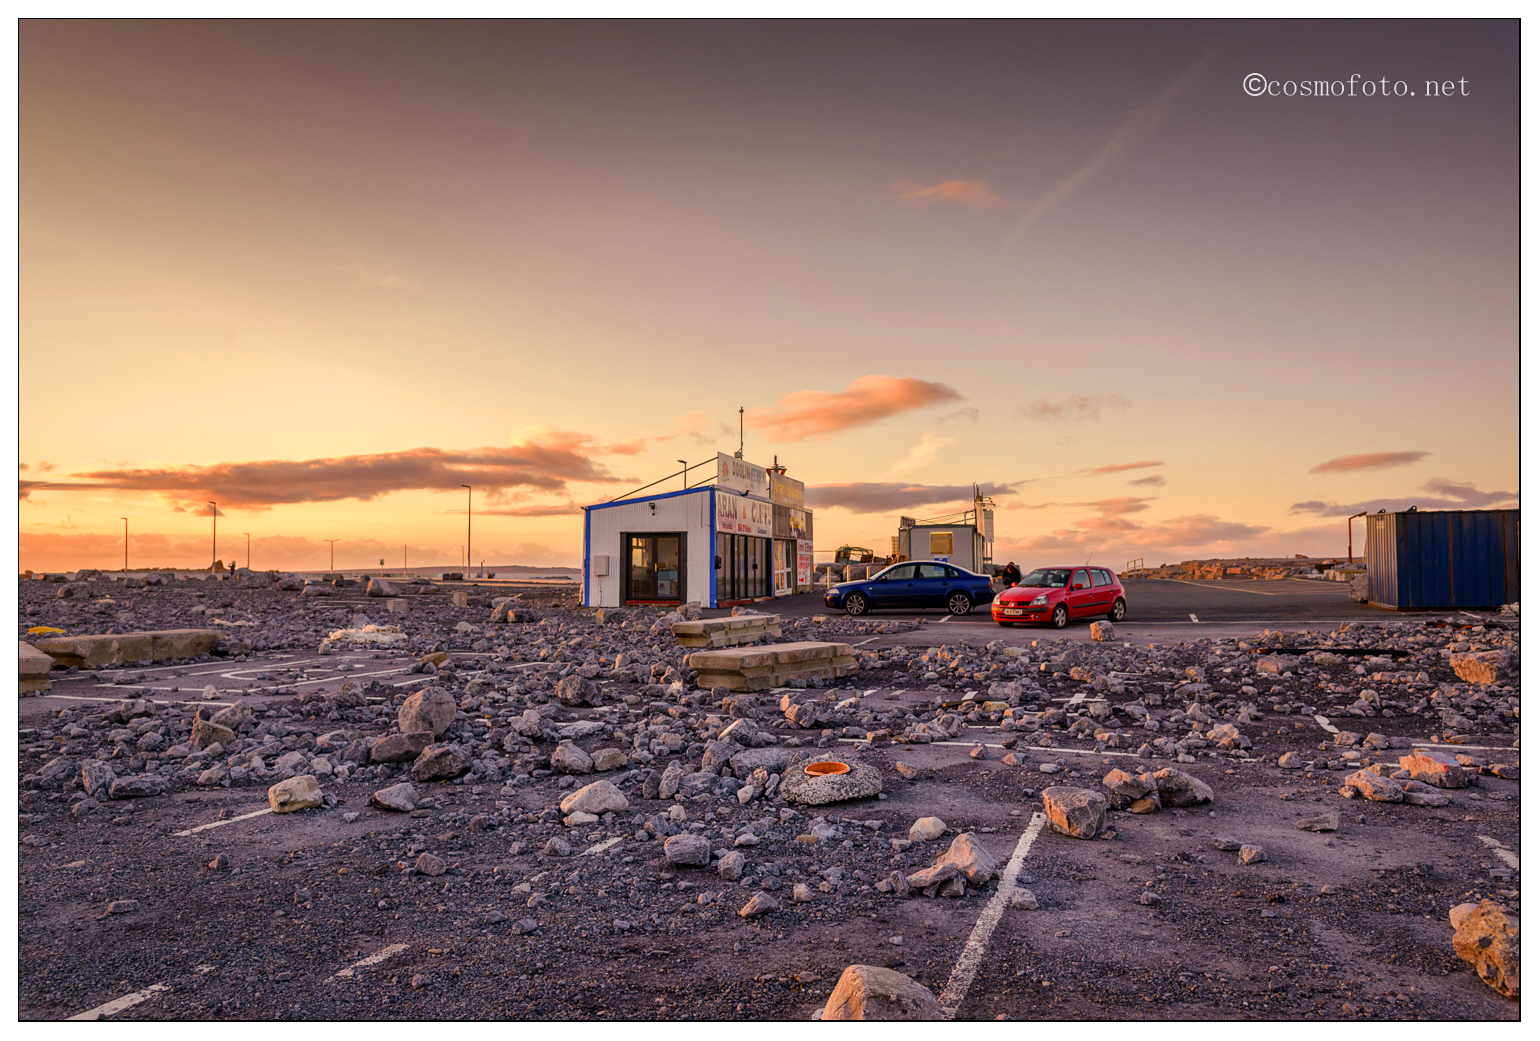 Doolin_ferry_carpark